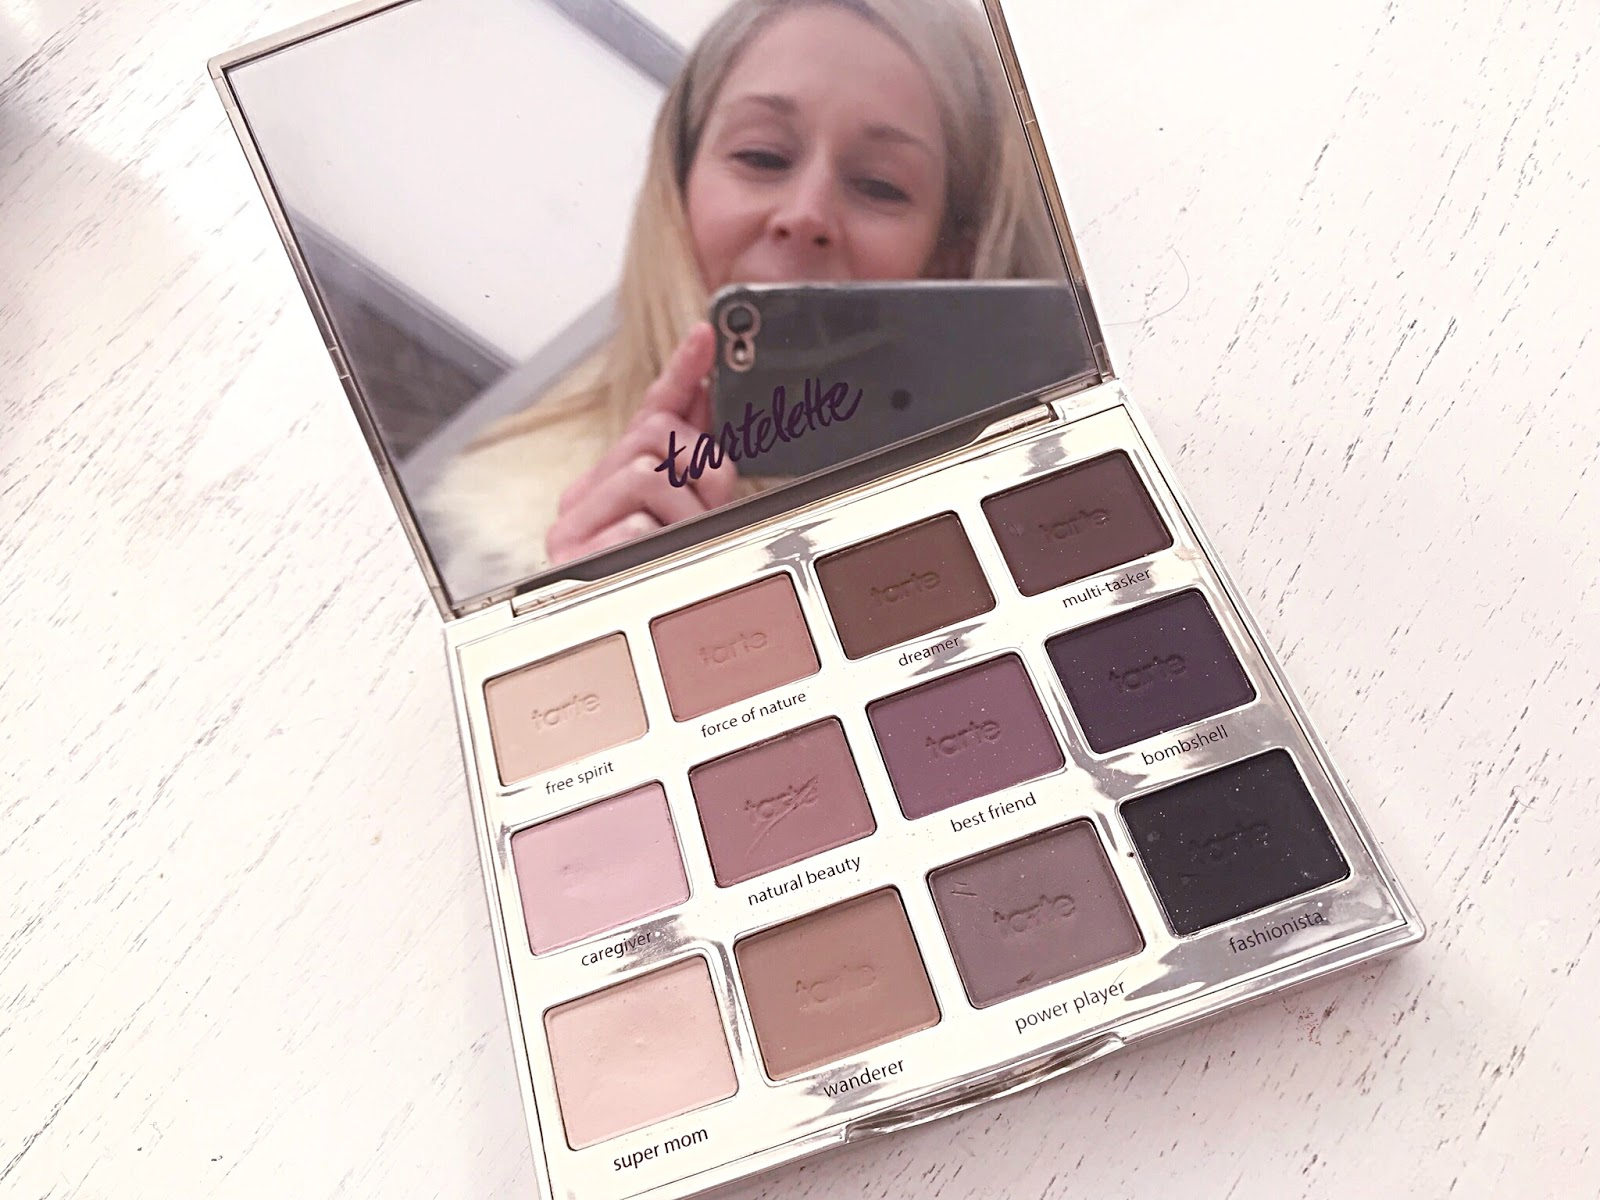 Eyeshadow Palette with a reflection of a girls face in the mirror